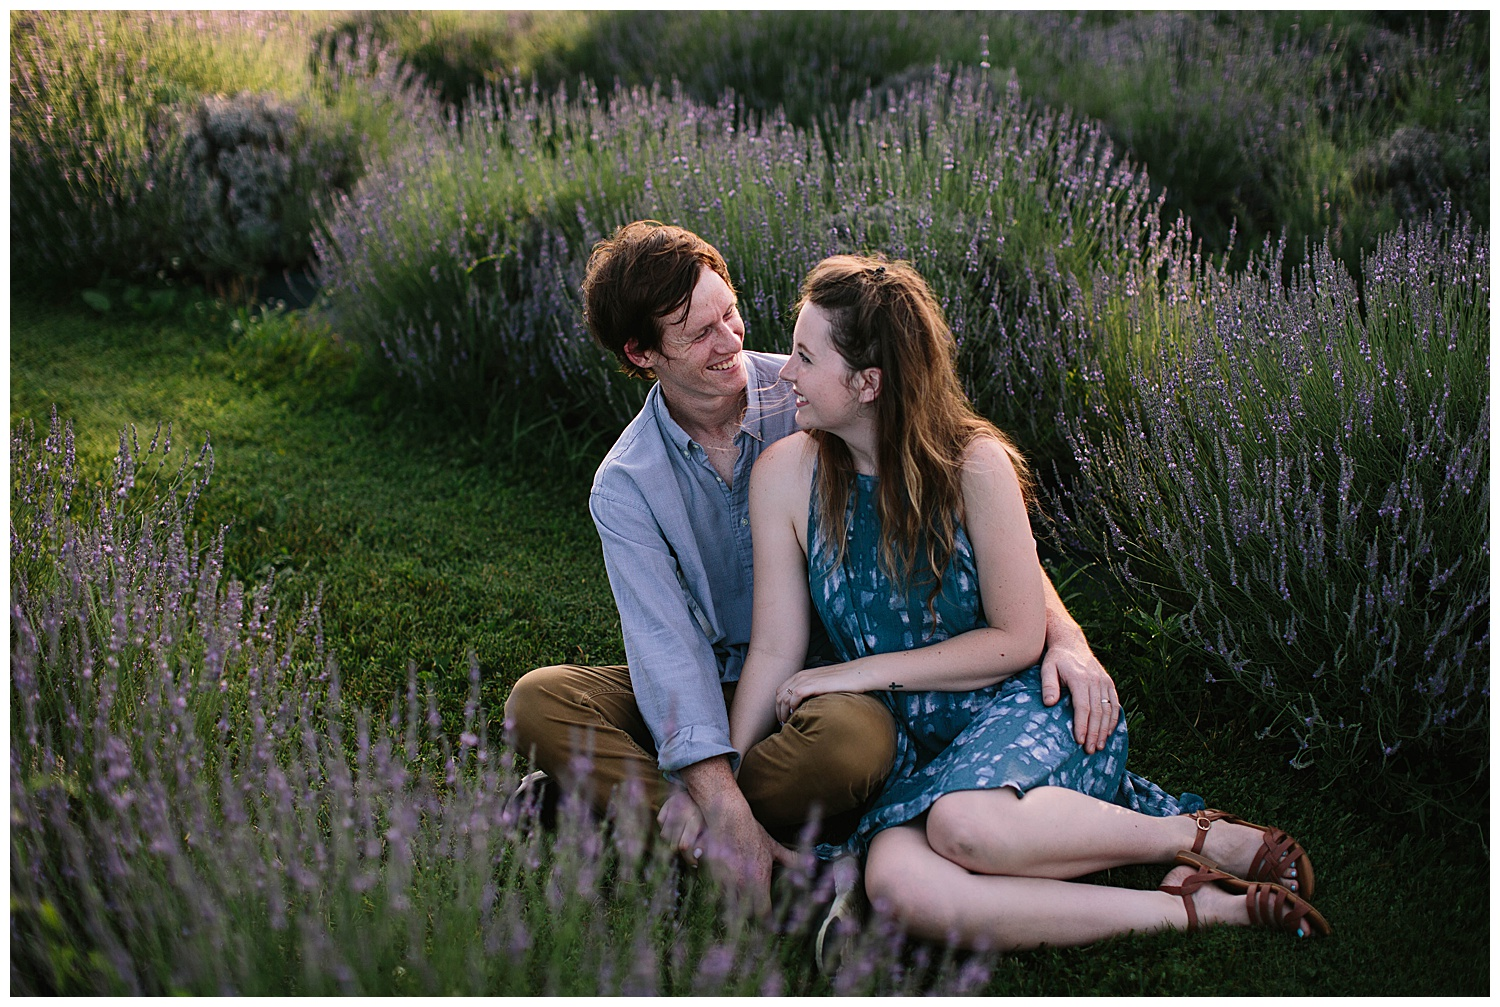 lavender.photoshoot.lavenderfarm.kentucky.engagement.anniversary.photography-57.jpg